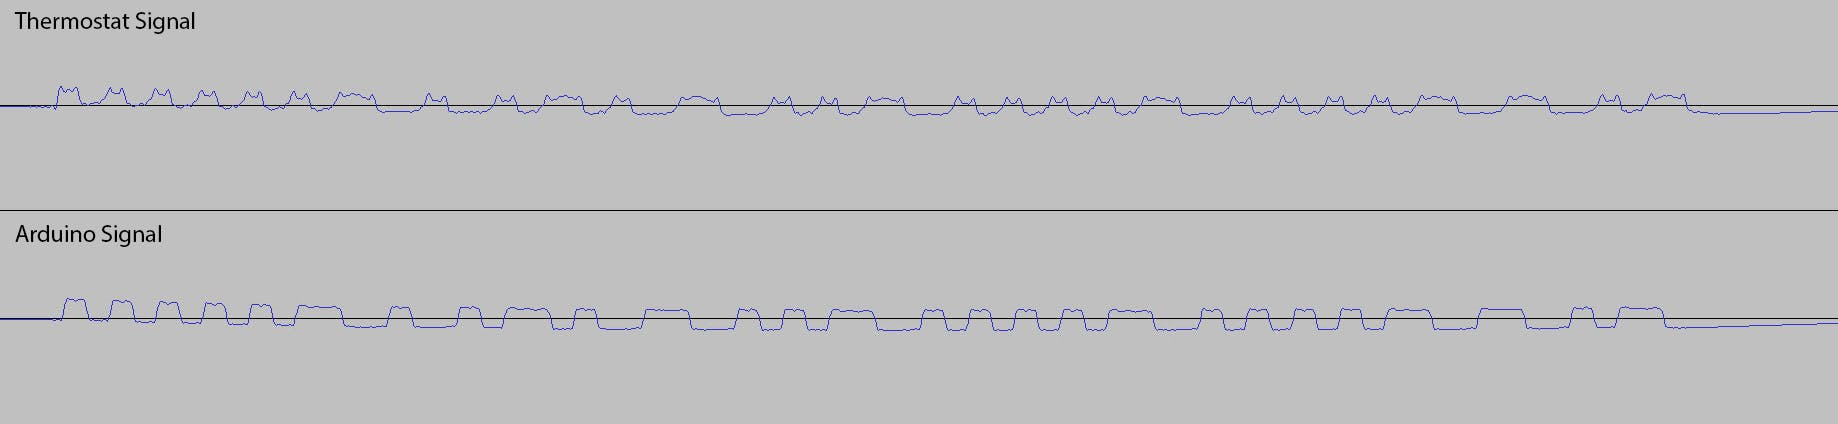 Original and replicated control signals